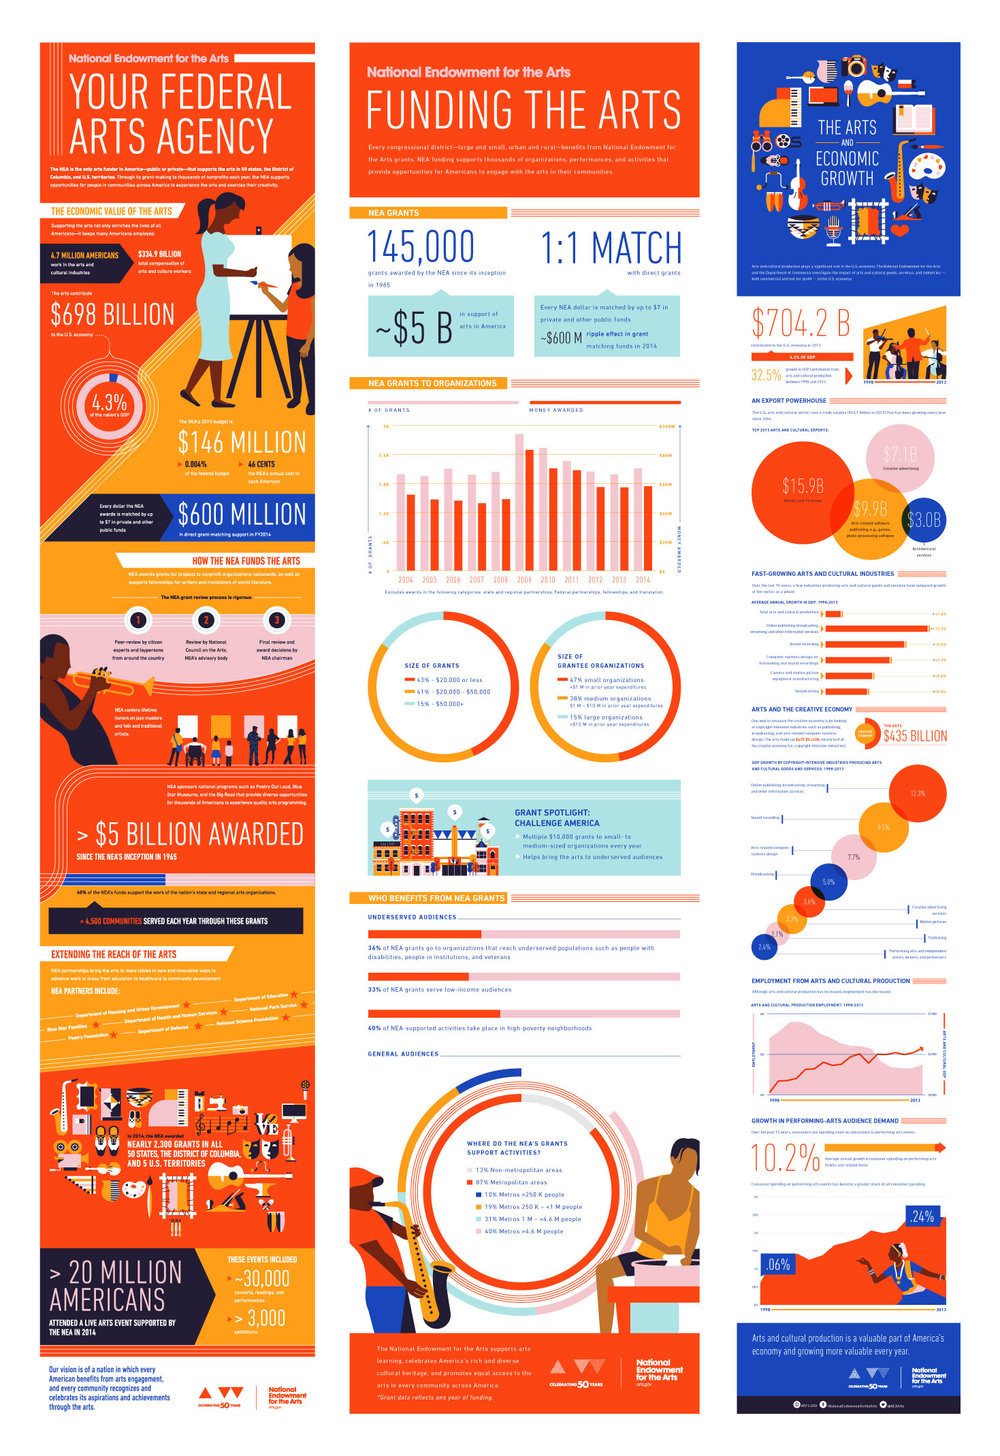 Infographics - Once the visual identity was established,we then needed to create a series of infographics and motion graphics to show the major impact that the NEA has on the US and it's individual communities.The first infographic published was a broad overview and introduction to the NEA. Following infographics covered topics like how the arts are funded, healing arts, the impact that art has on the economy, etc.